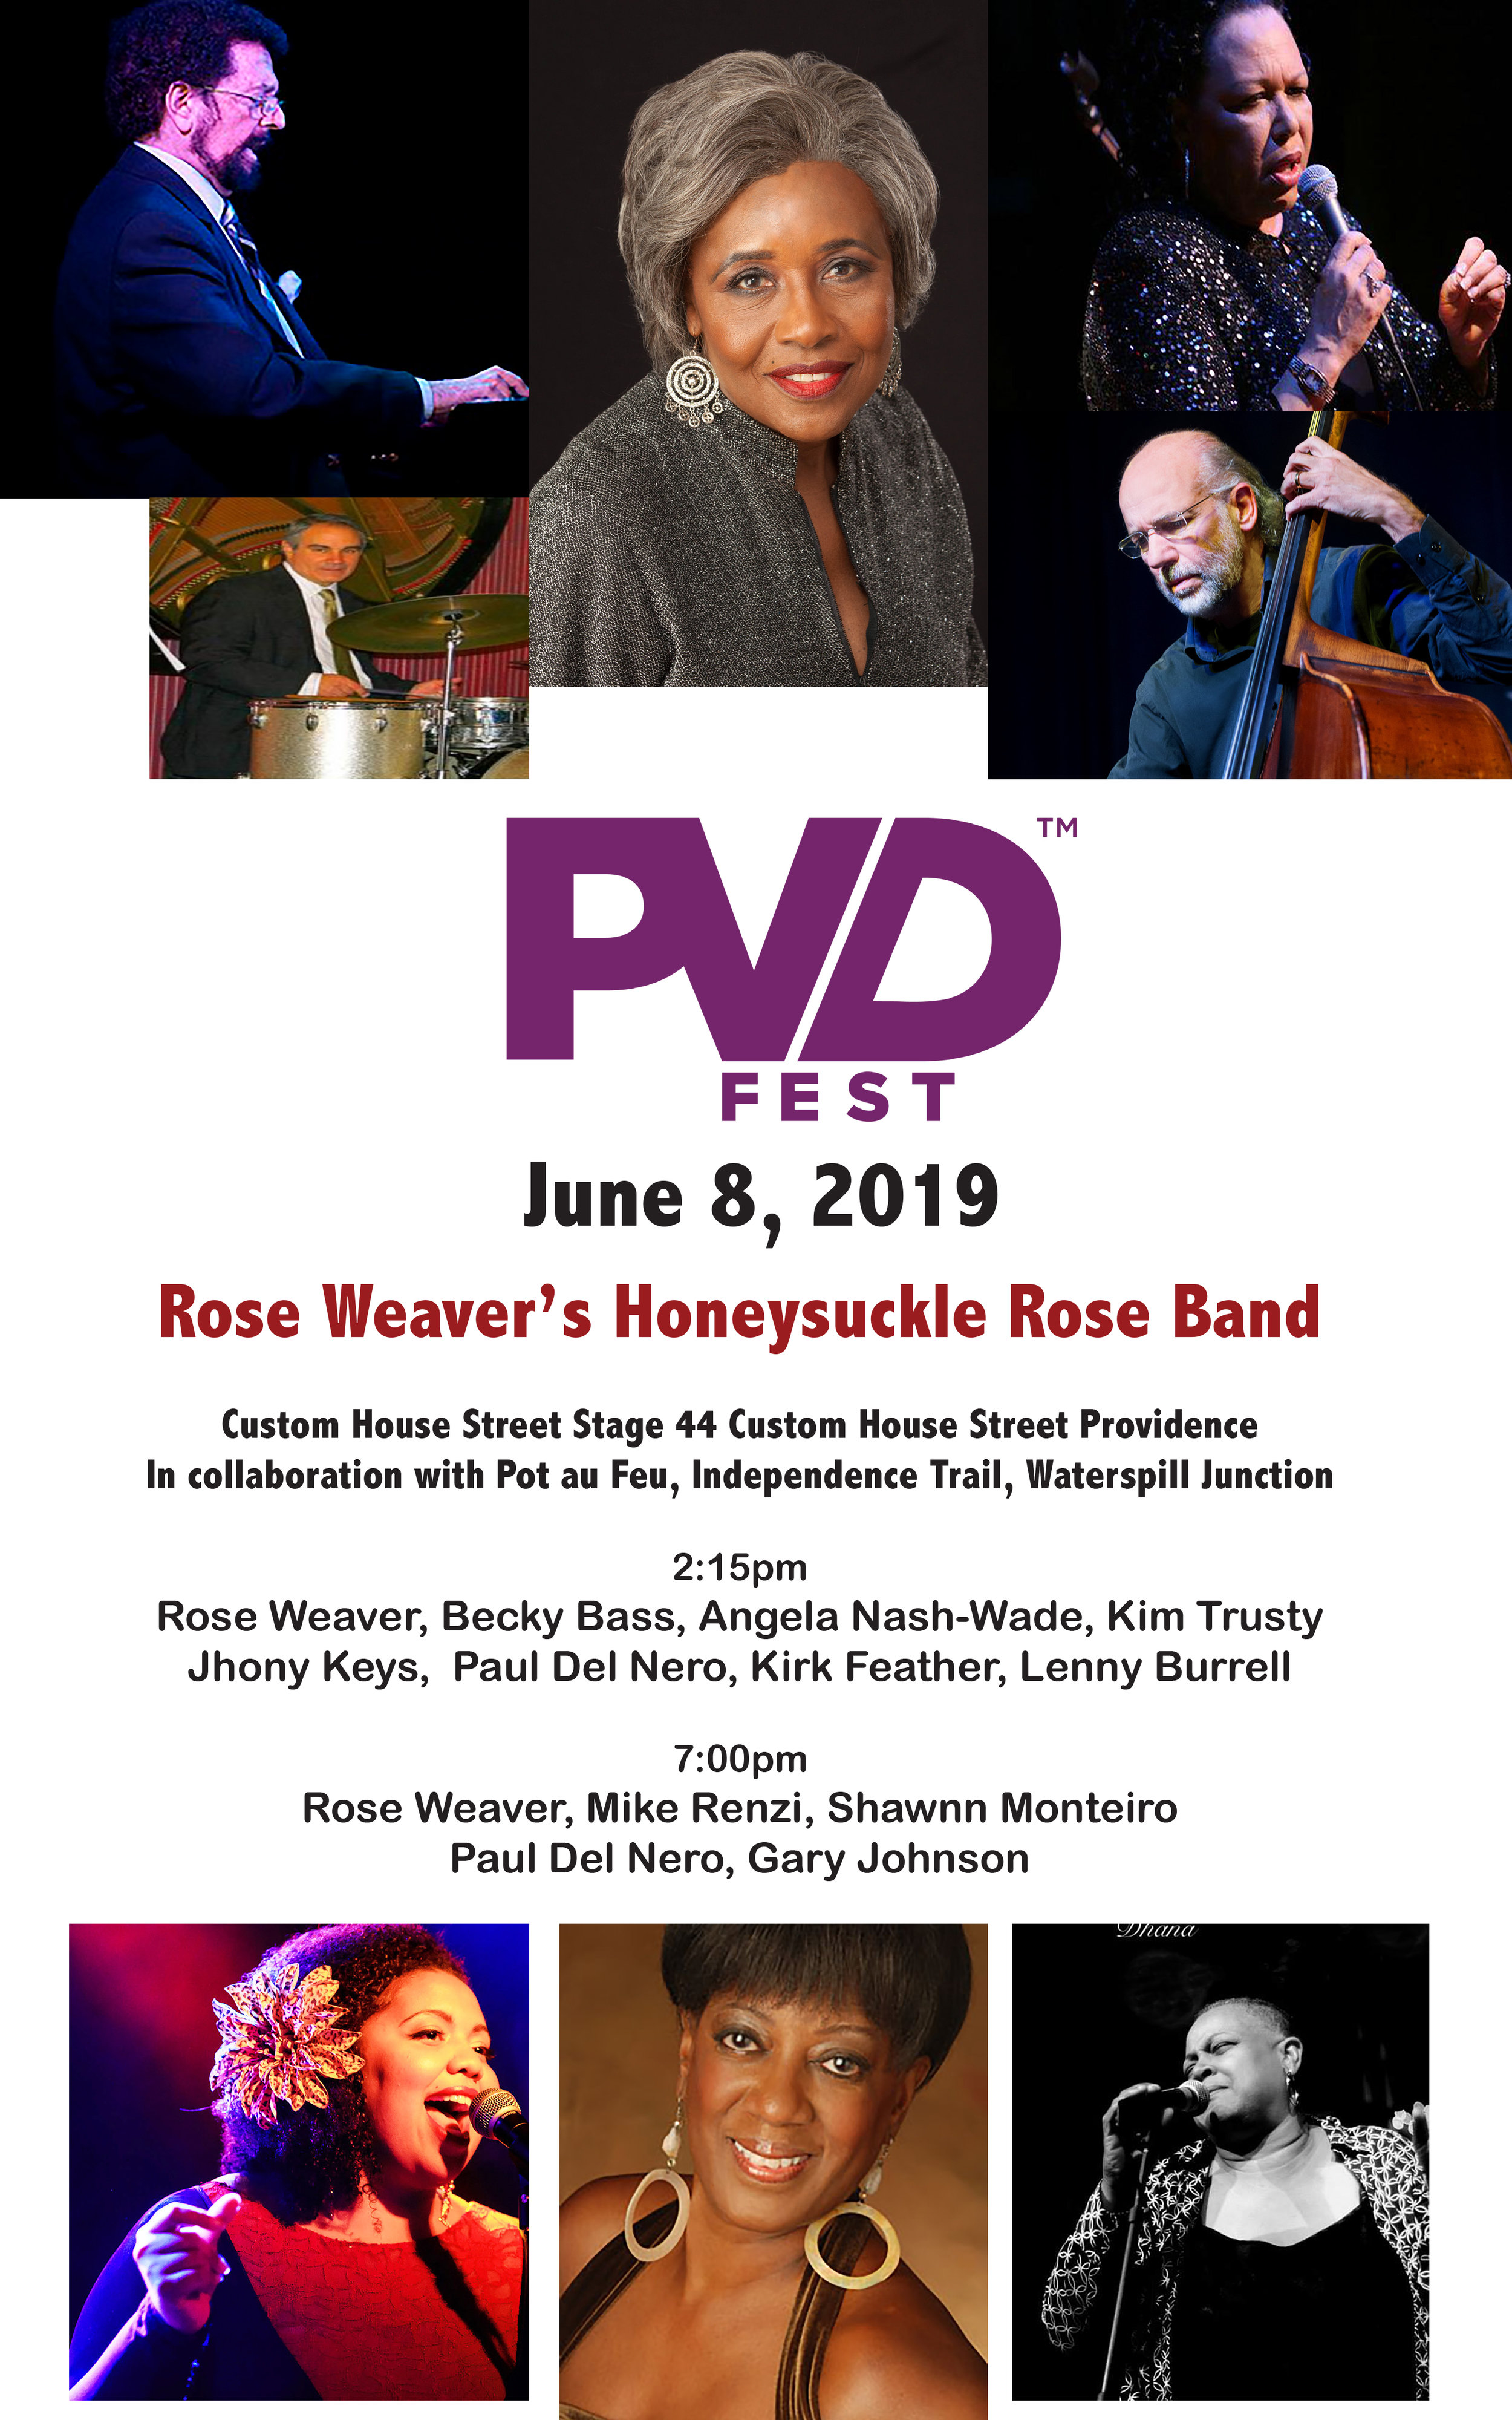 PVDFest 2019 - Rose Weaver's Honeysuckle Rose Band